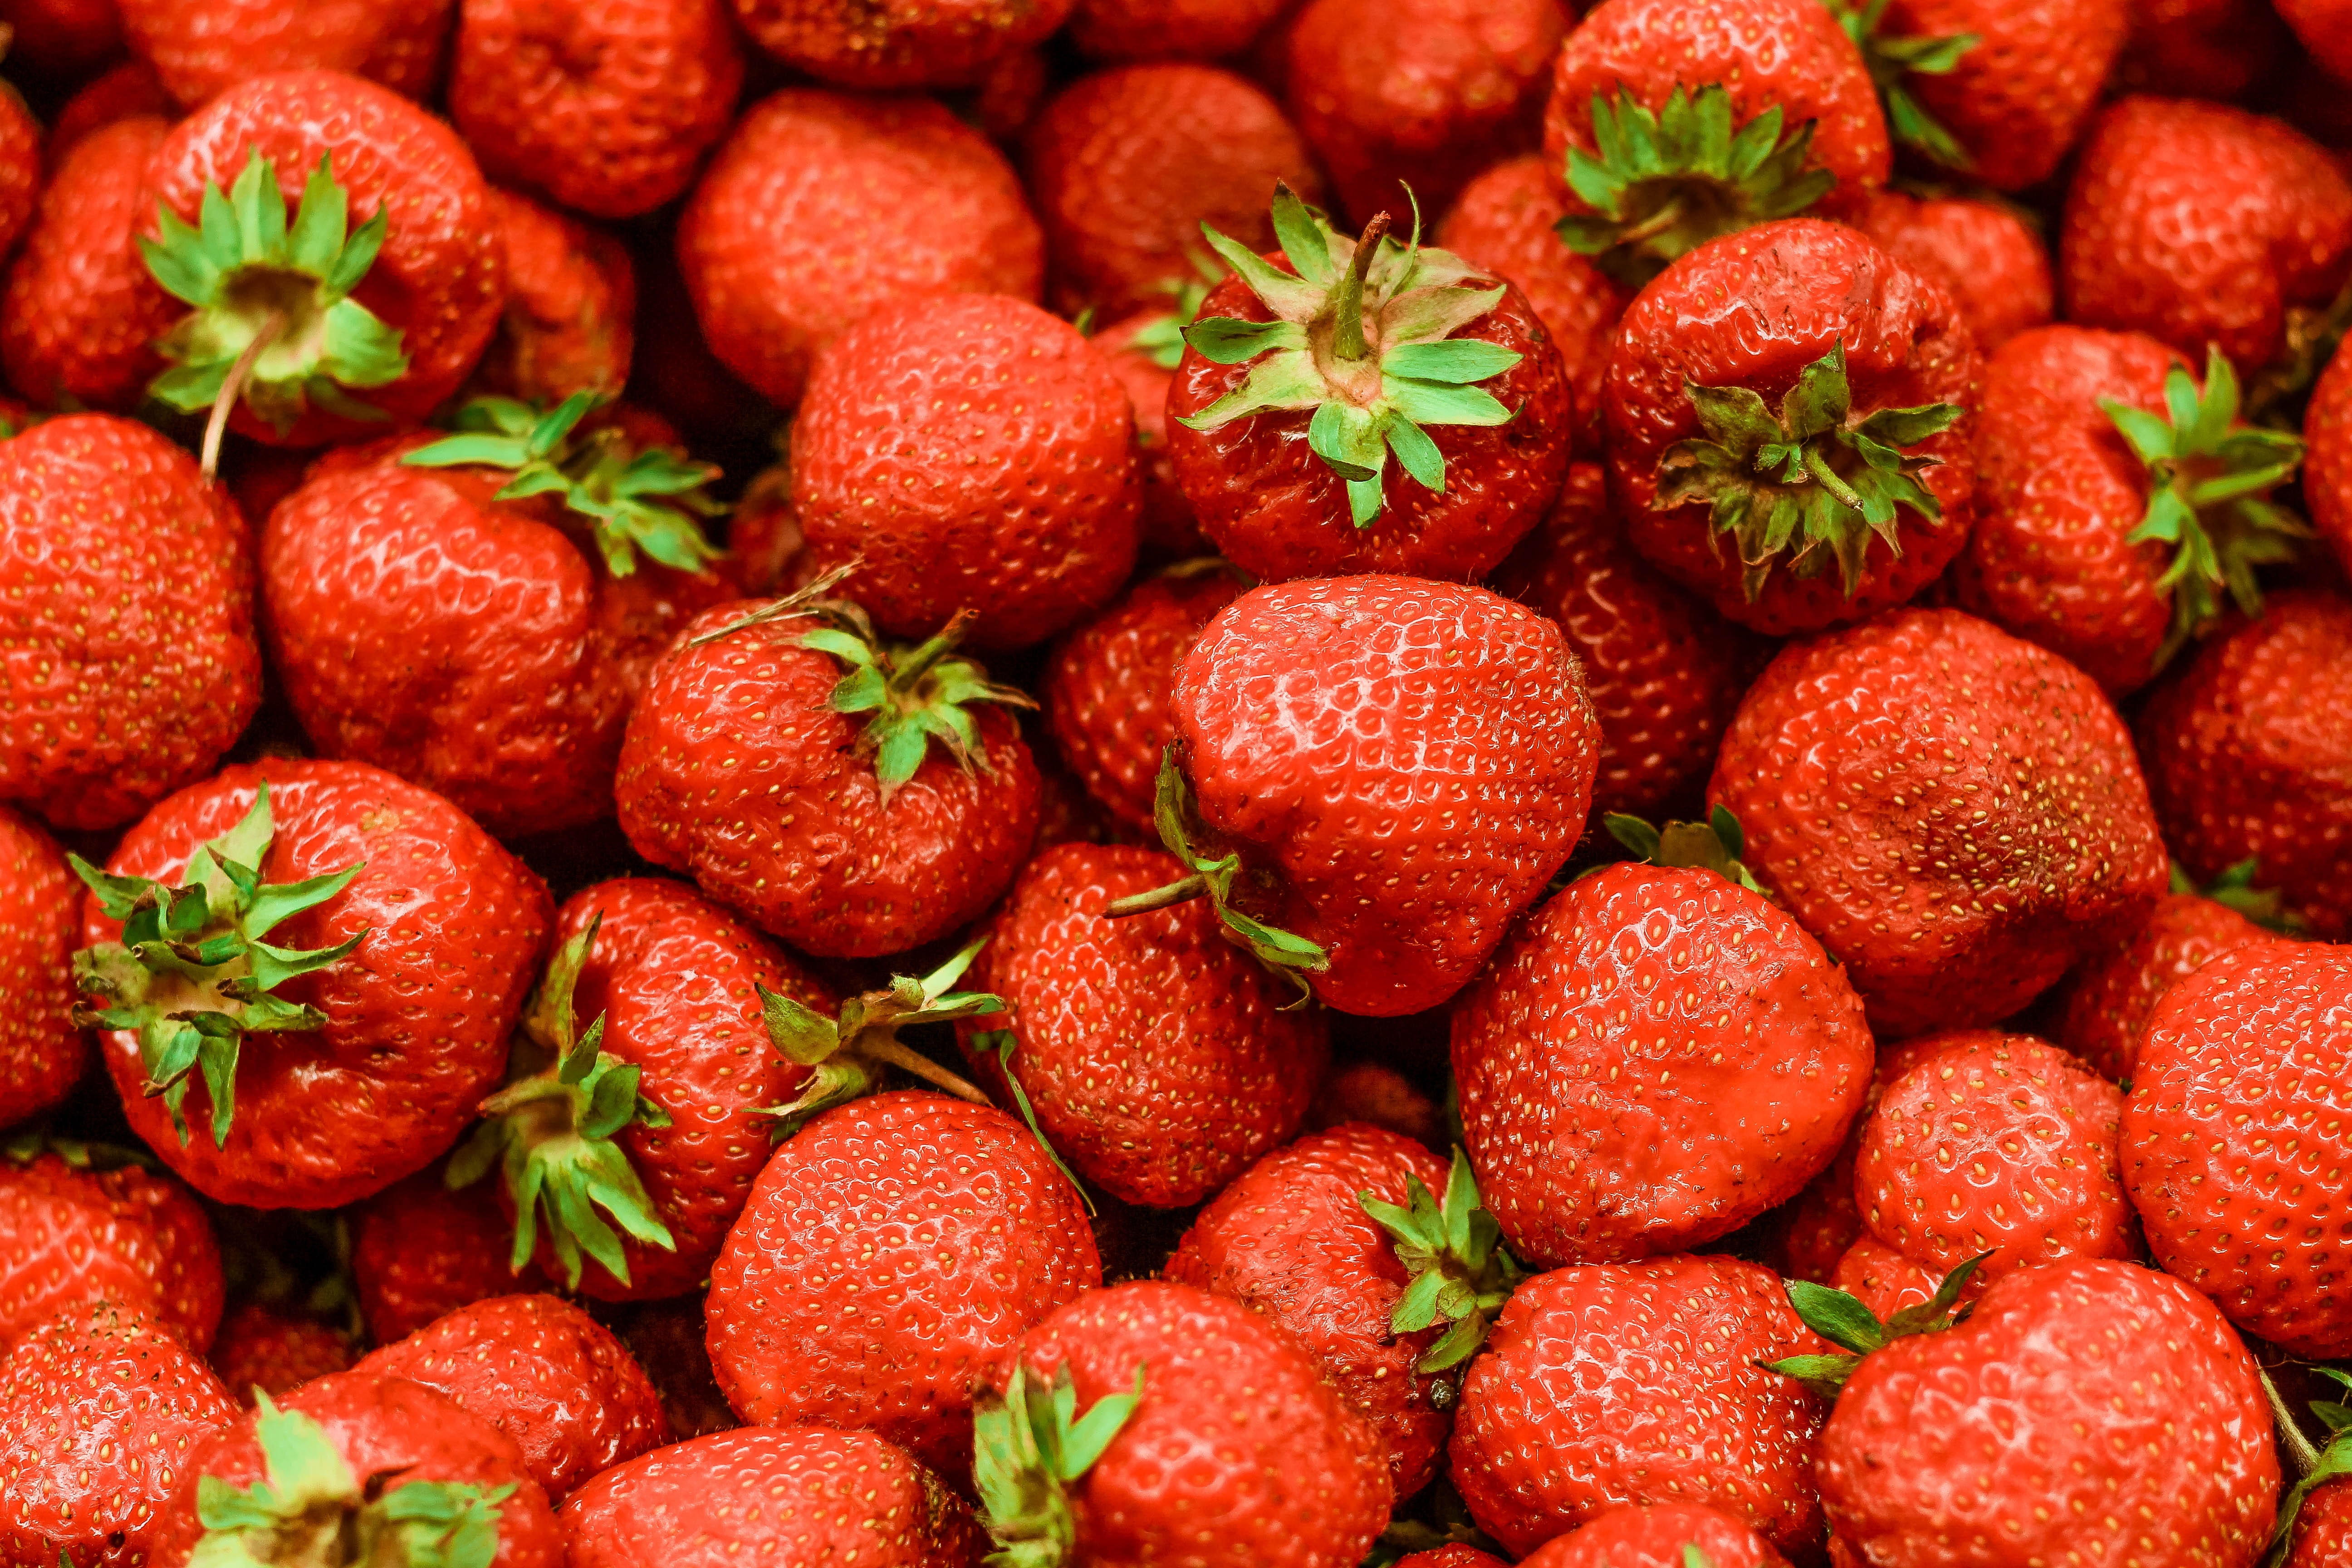 Pile of fresh strawberries with green tops